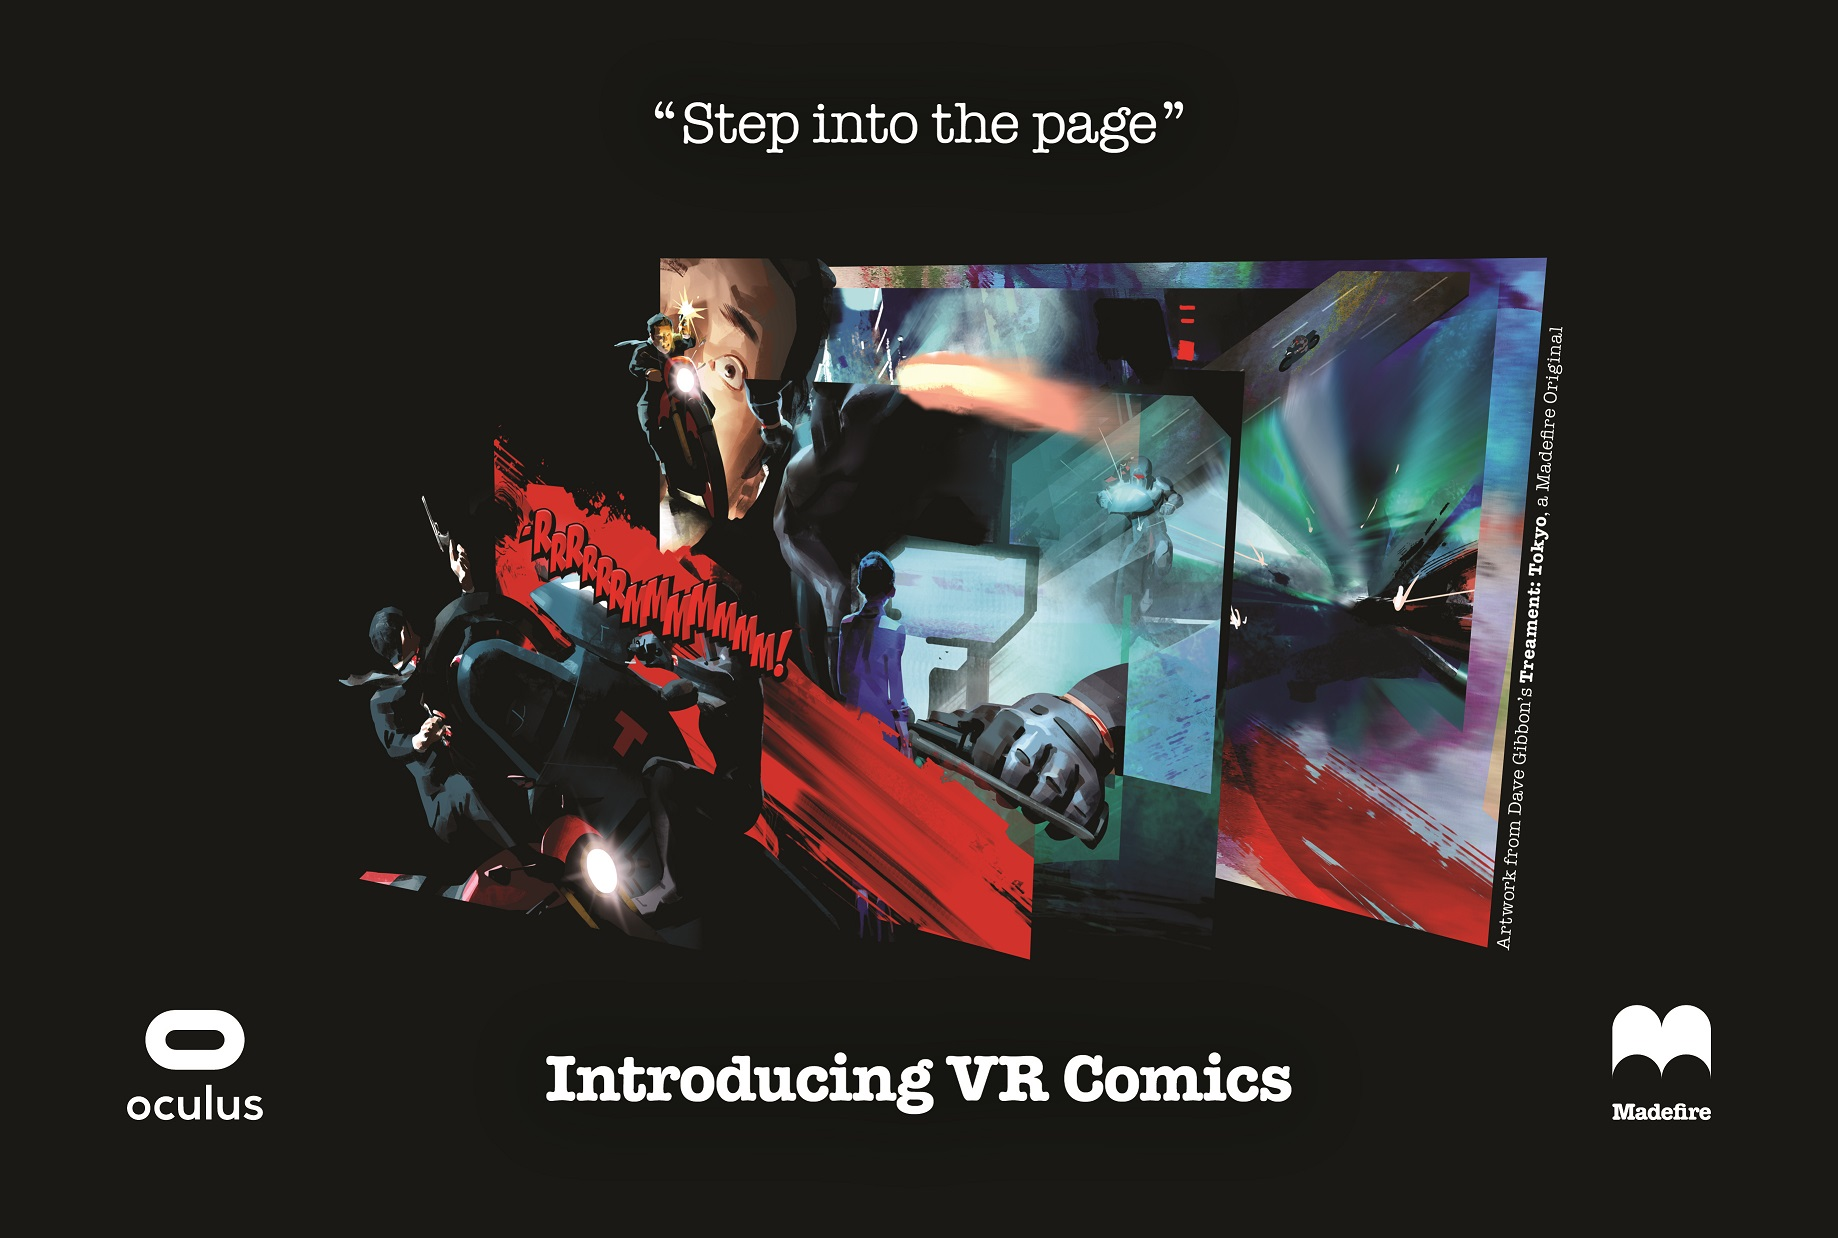 Digital comics startup Madefire launches its first virtual